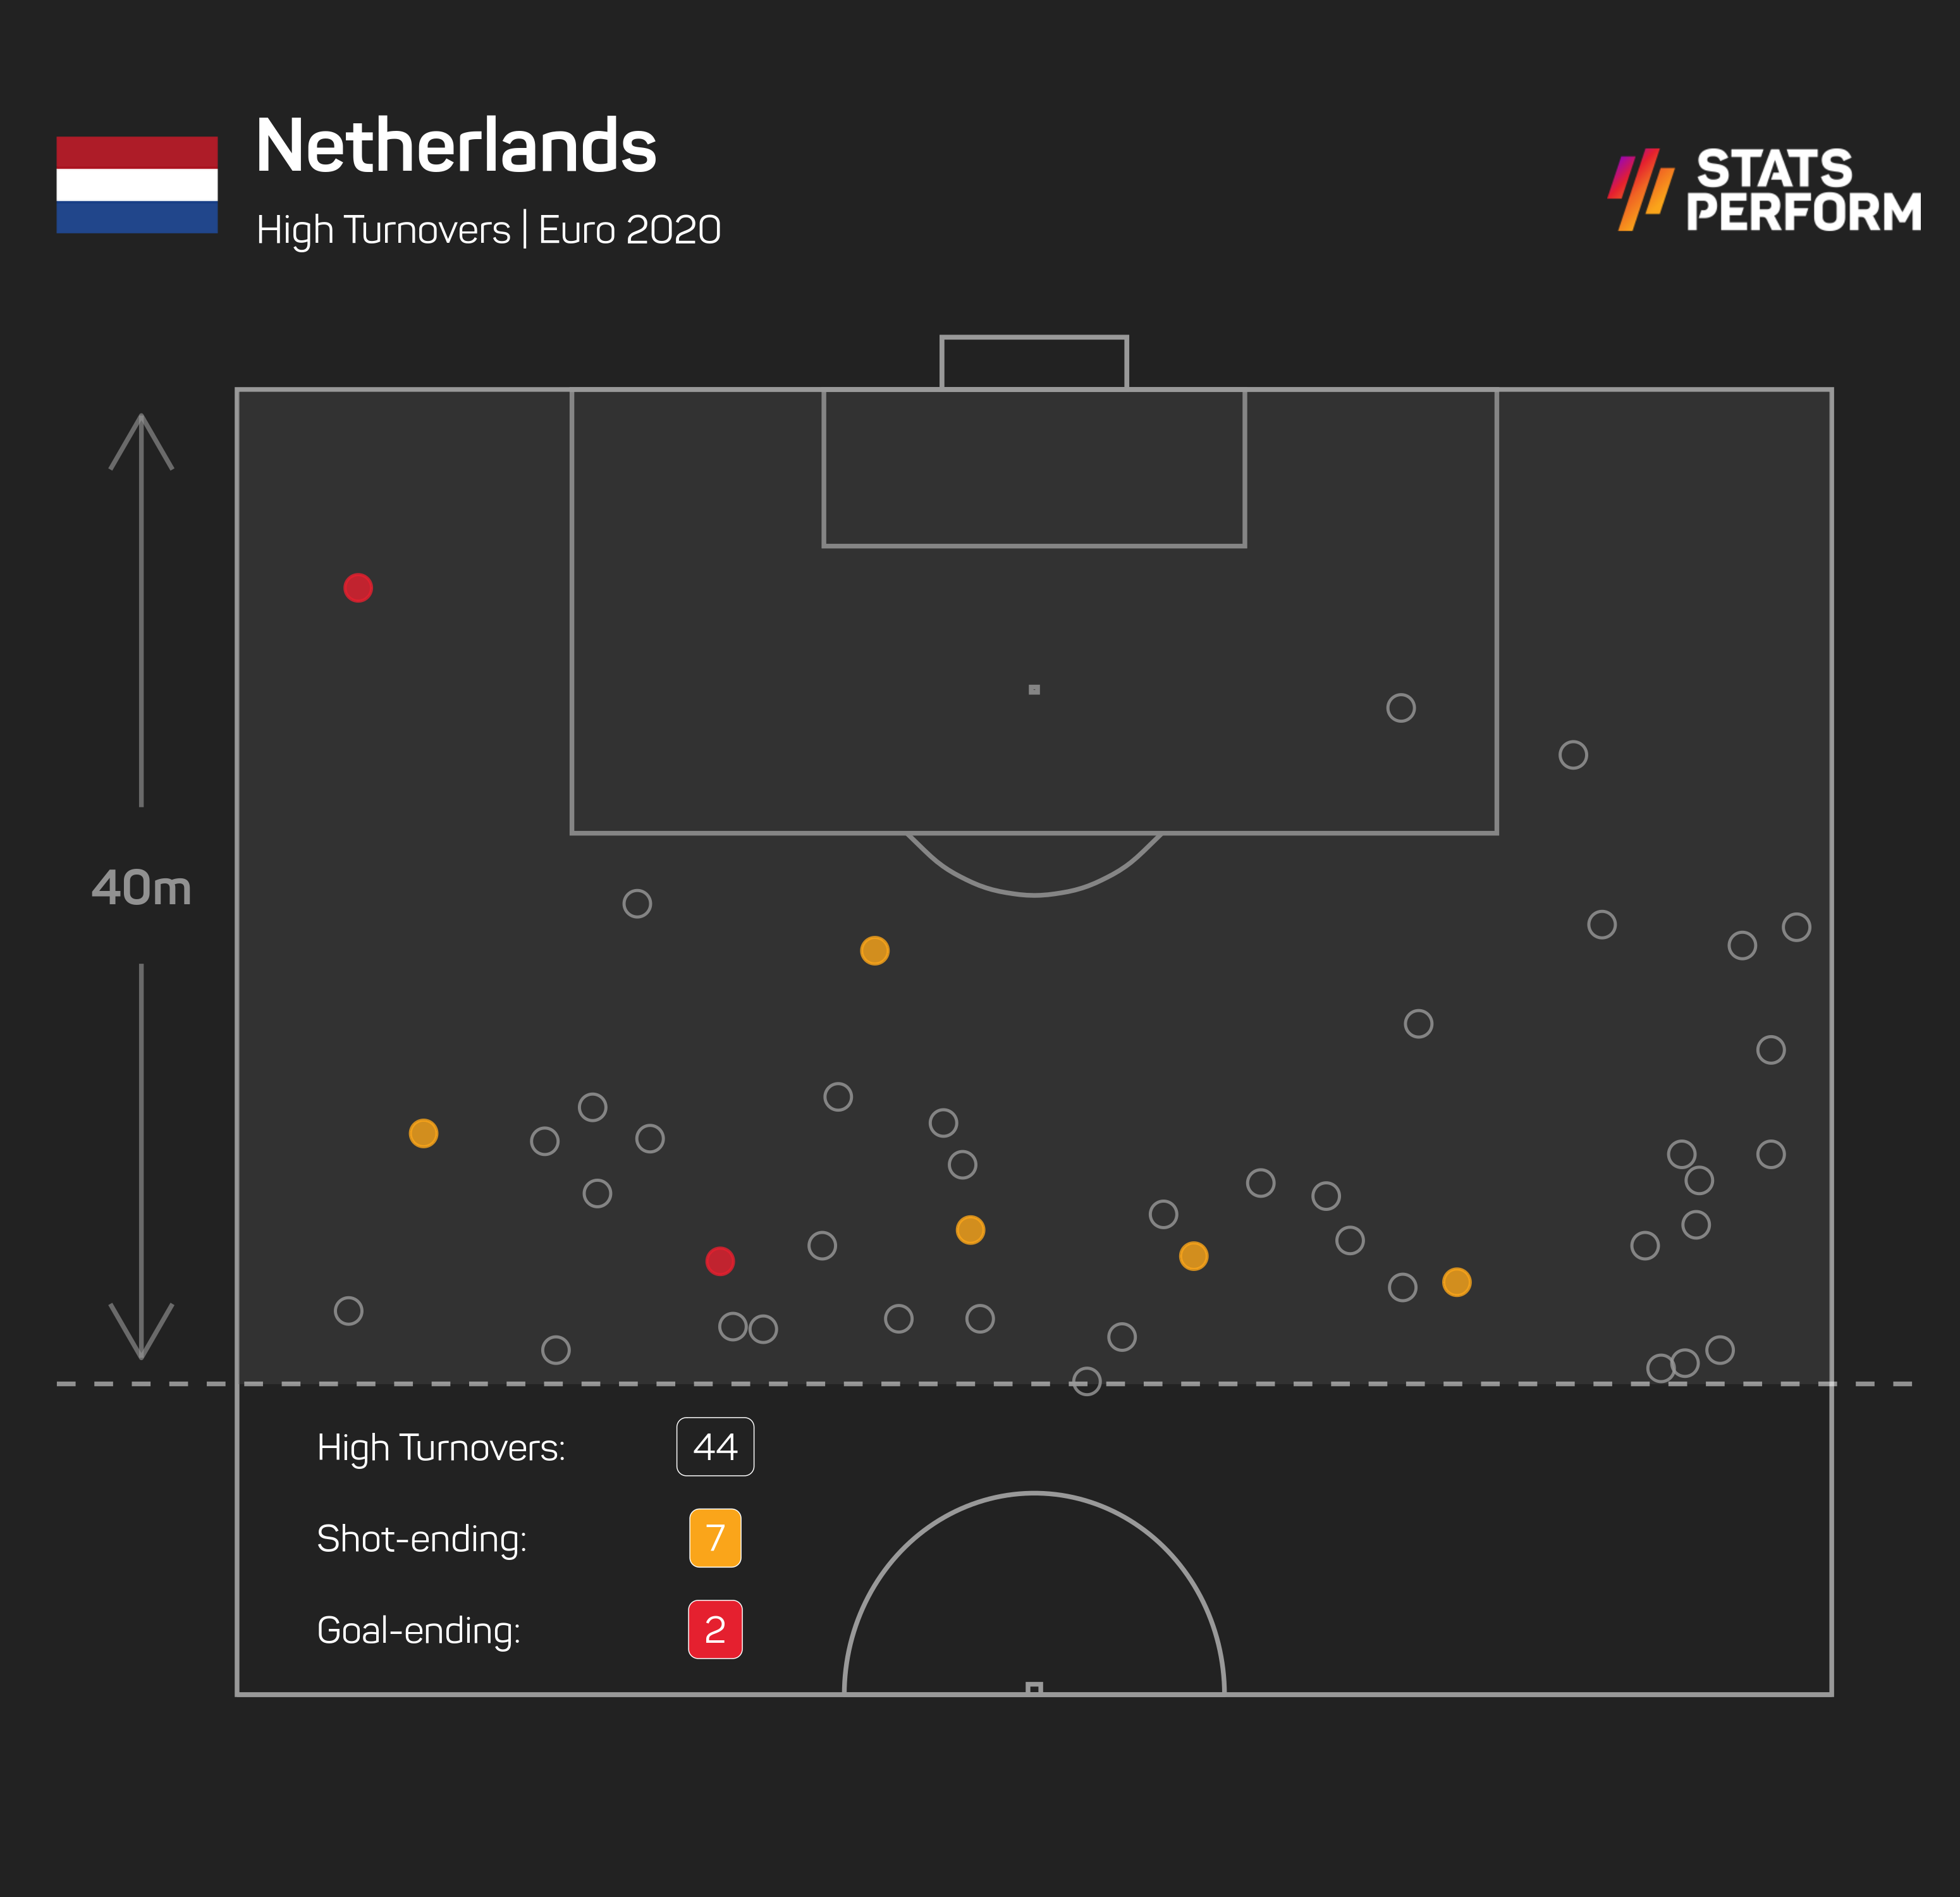 No team has made more high turnovers than Netherlands in Euro 2020